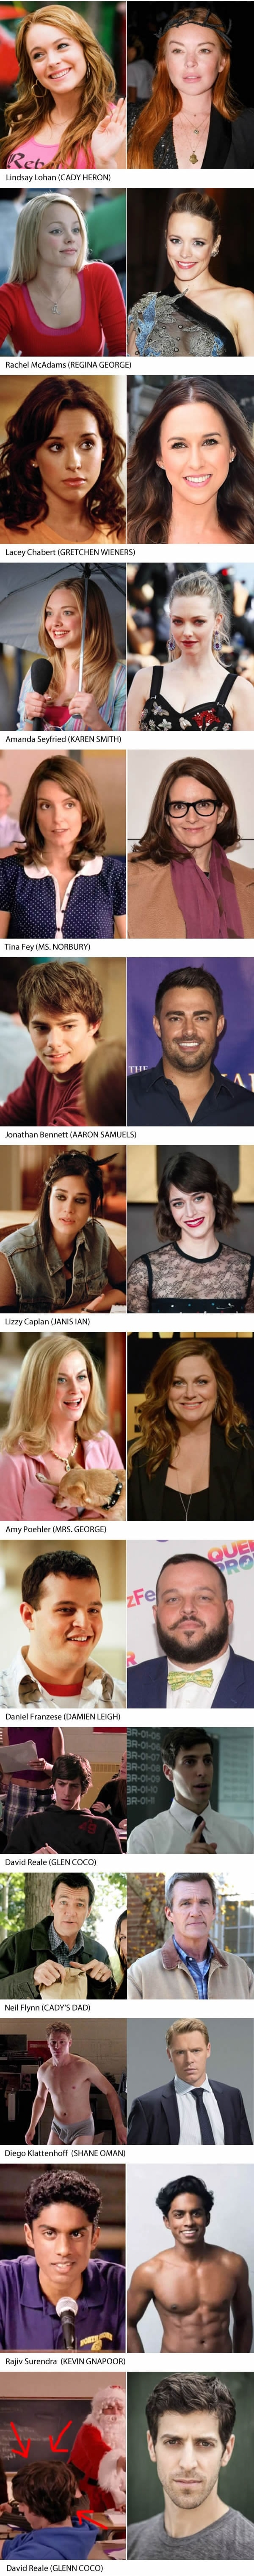 Mean Girls cast then and now